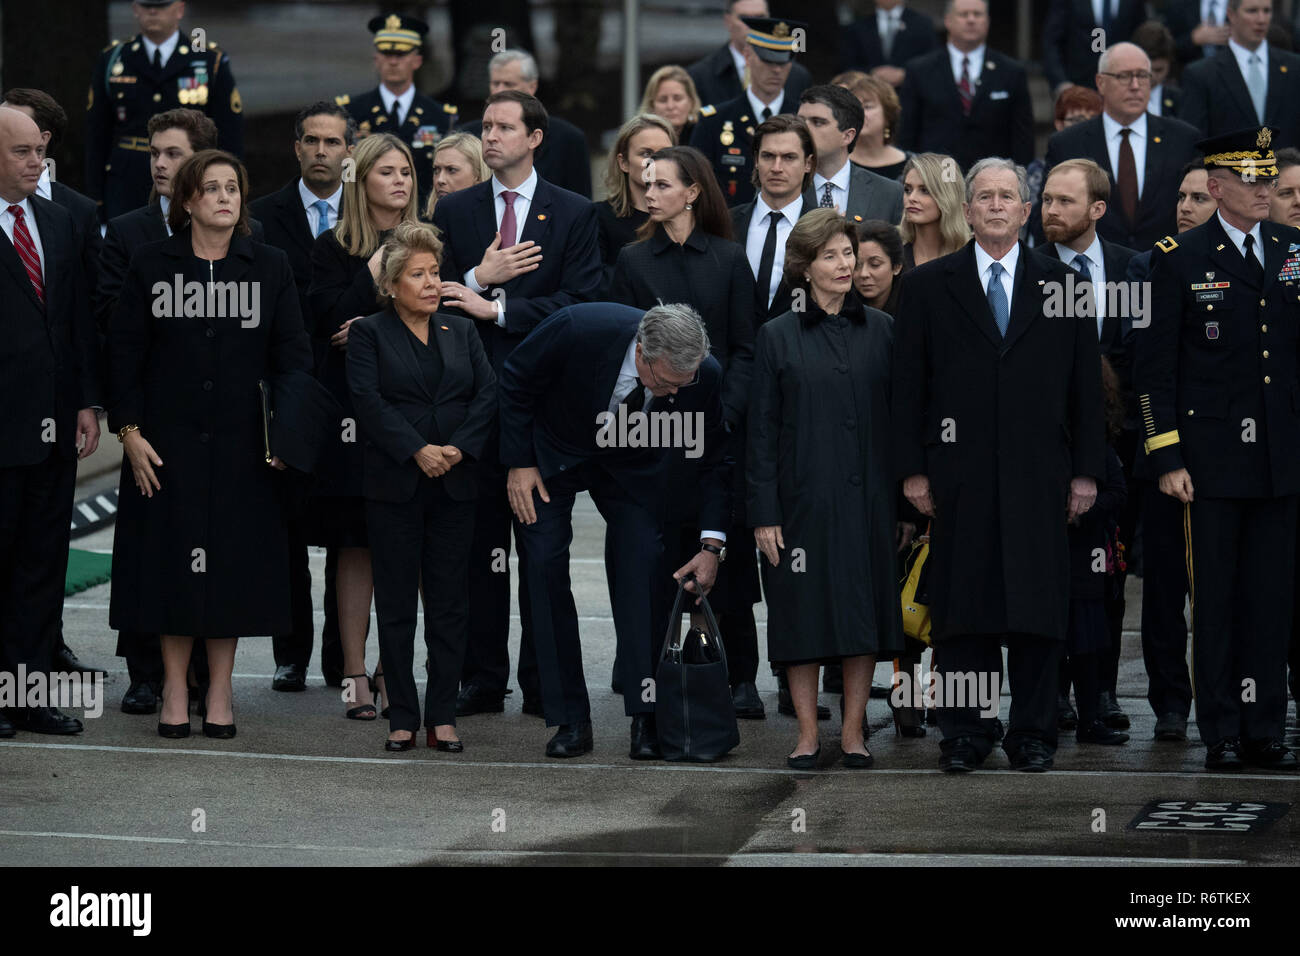 College Station, USA. 06th Dec, 2018. The casket containing the remains of former President George H.W. Bush arrives at Texas A&M University for a 20-minute ceremony before its final resting place at the George Bush Library. Bush passed away Nov. 30th in Houston. Credit: Bob Daemmrich/Alamy Live News - Stock Image